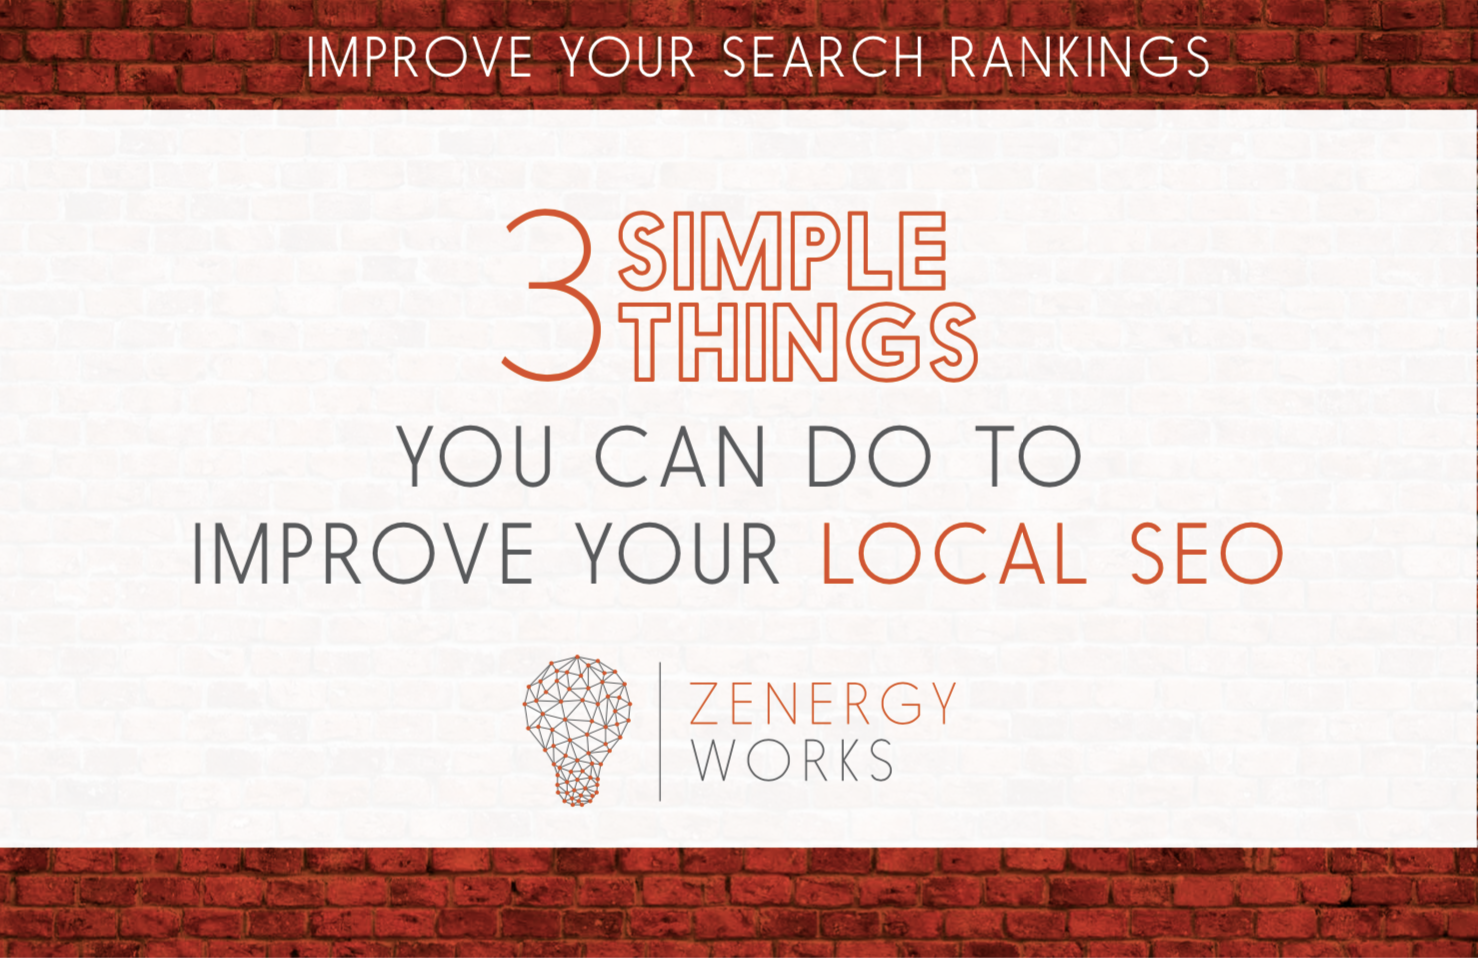 3 Simple Things You Can Do to Improve Your Local SEO